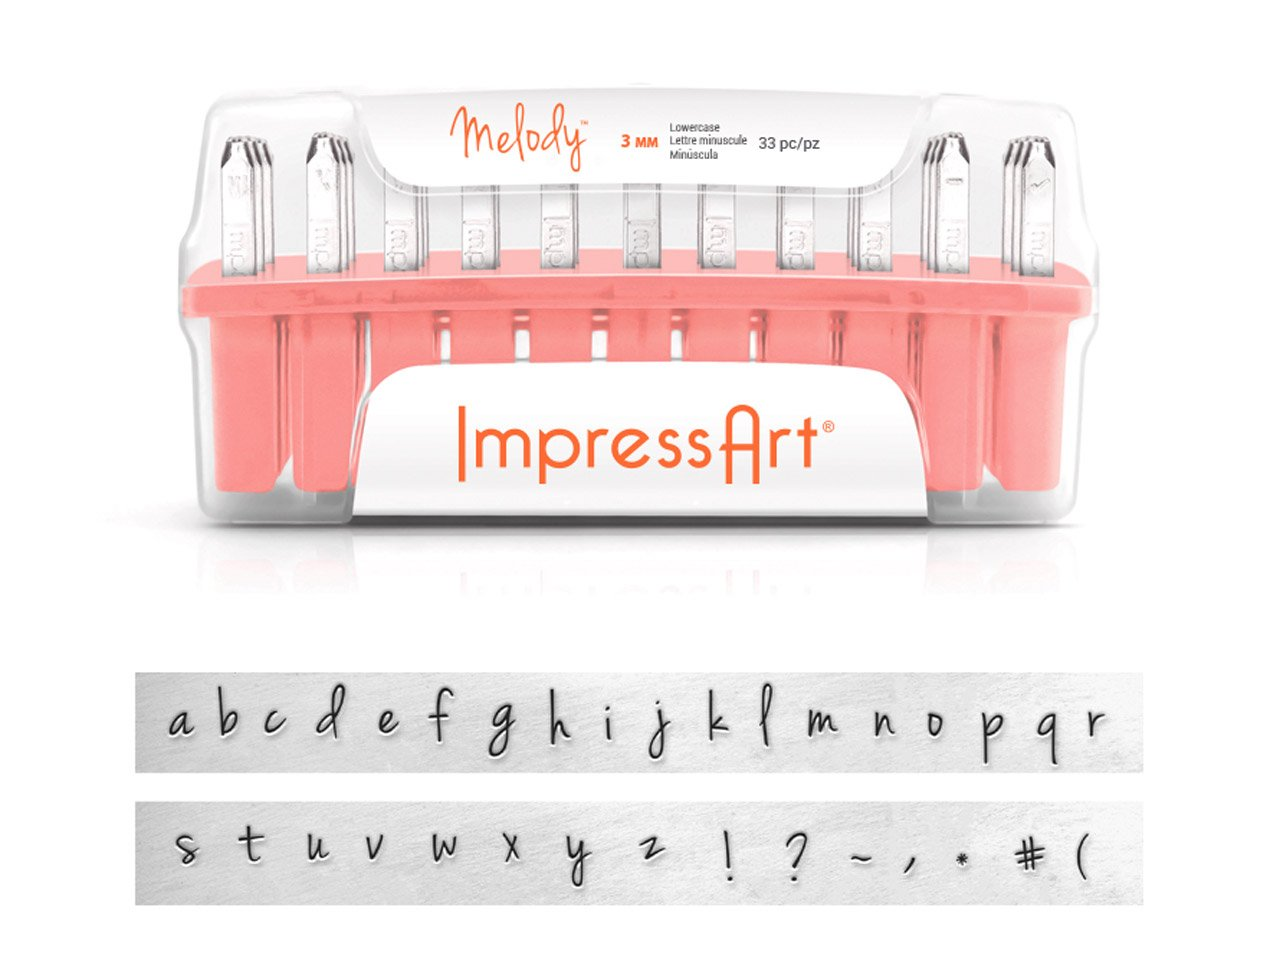 Impress Art 3mm Melody Font 75 pc. Full Full Full Stamp Collection for Stamping B07J3YBKL1 | New Product 2019  7c3f4a